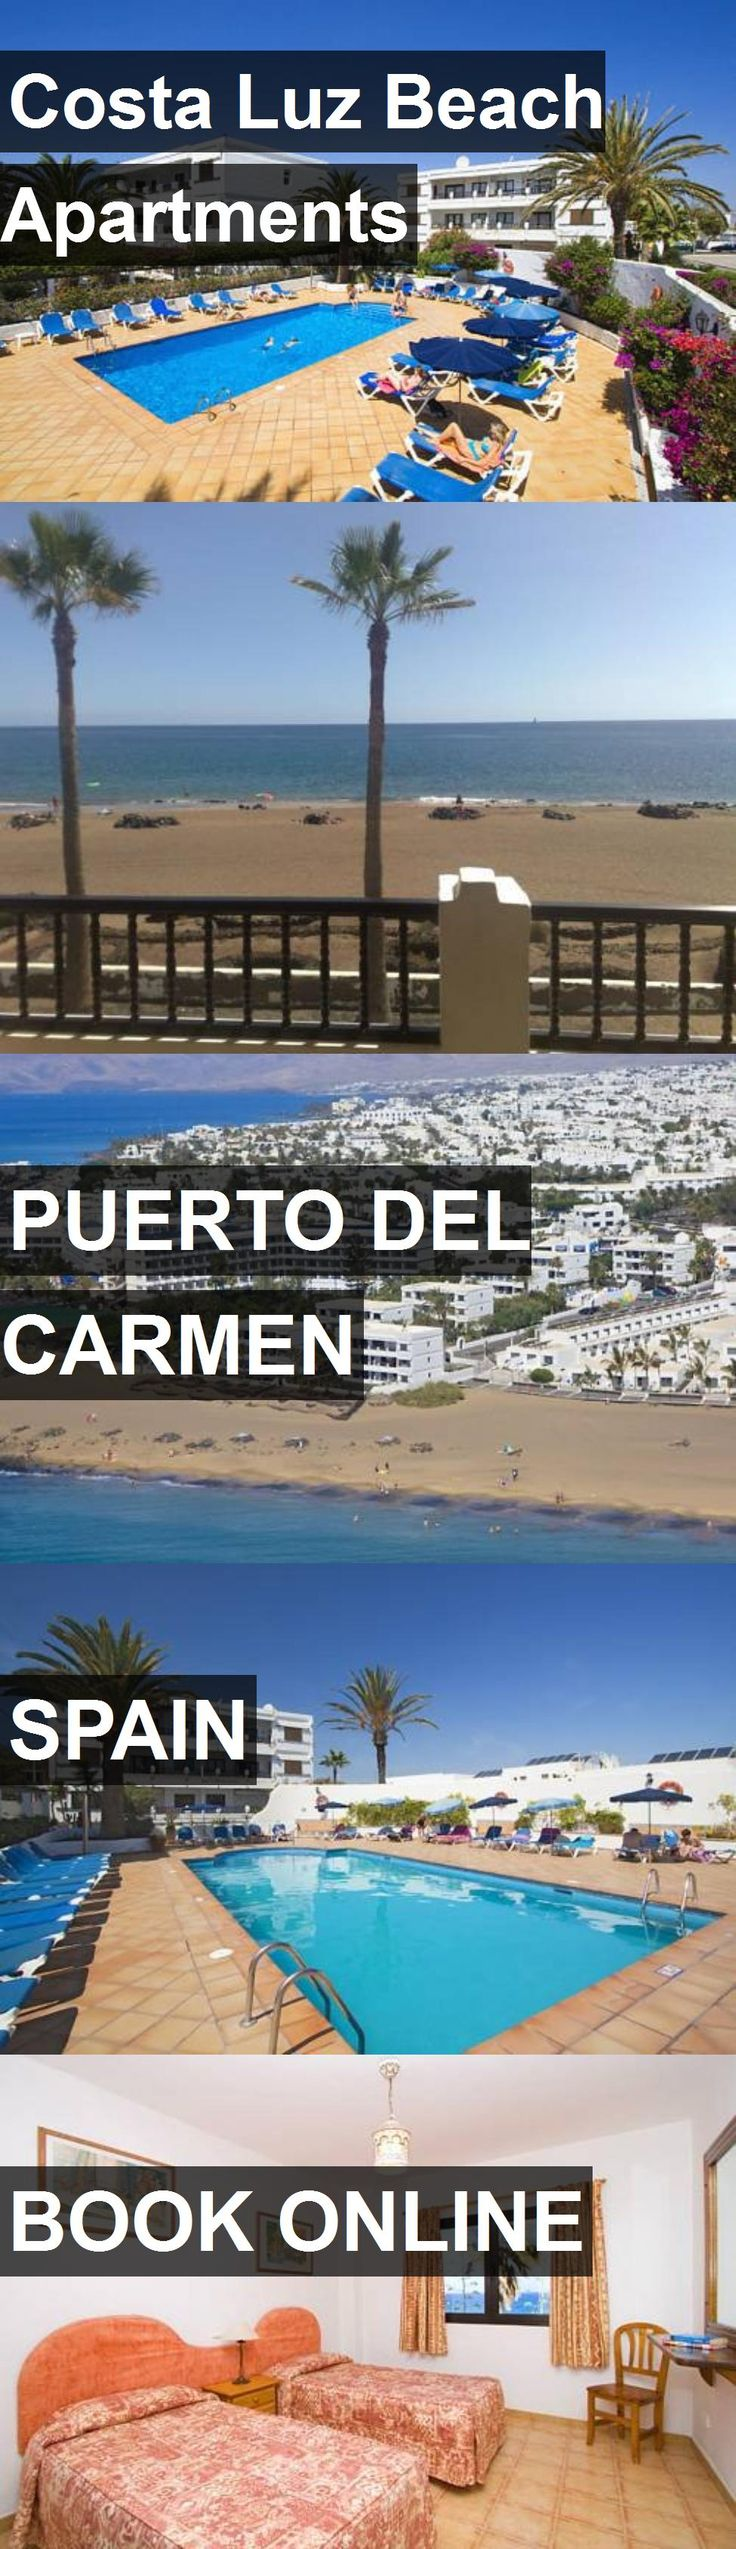 Costa Luz Beach Apartments in Puerto del Carmen, Spain. For more information, photos, reviews and best prices please follow the link. #Spain #PuertodelCarmen #travel #vacation #apartment